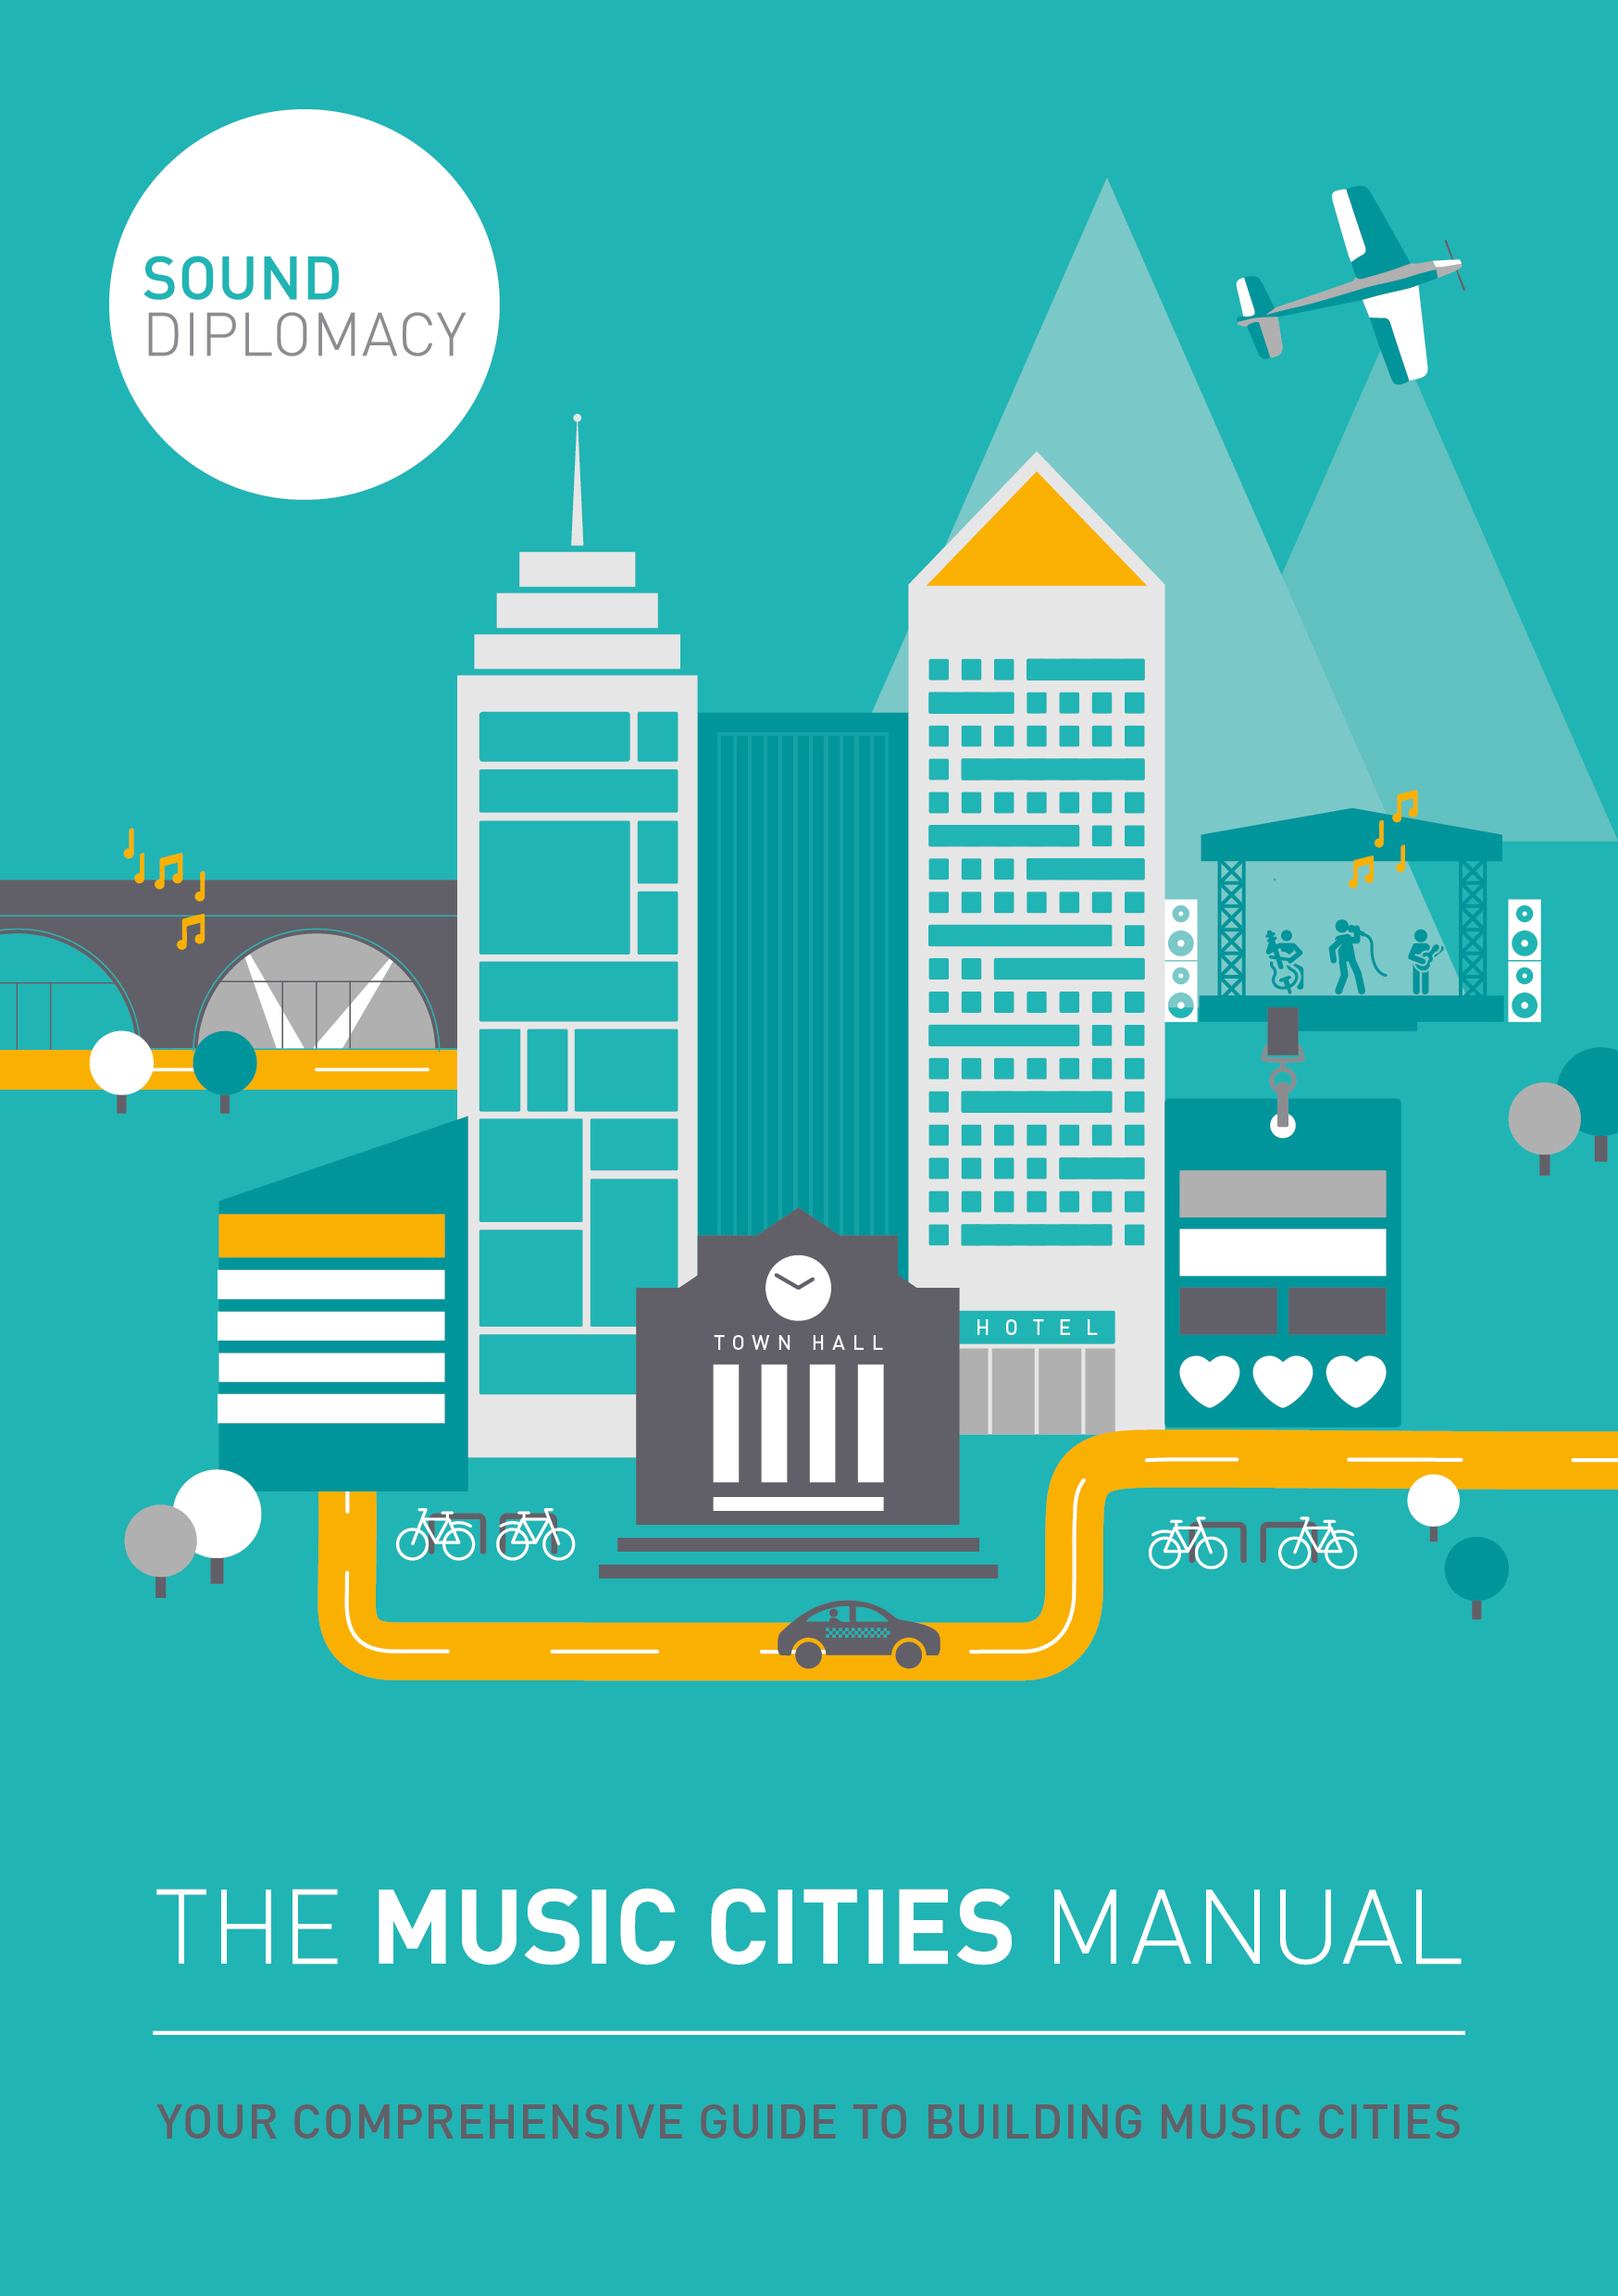 748 SOUND DIPLOMACY Music Cities Guide Assets_Cover.jpg